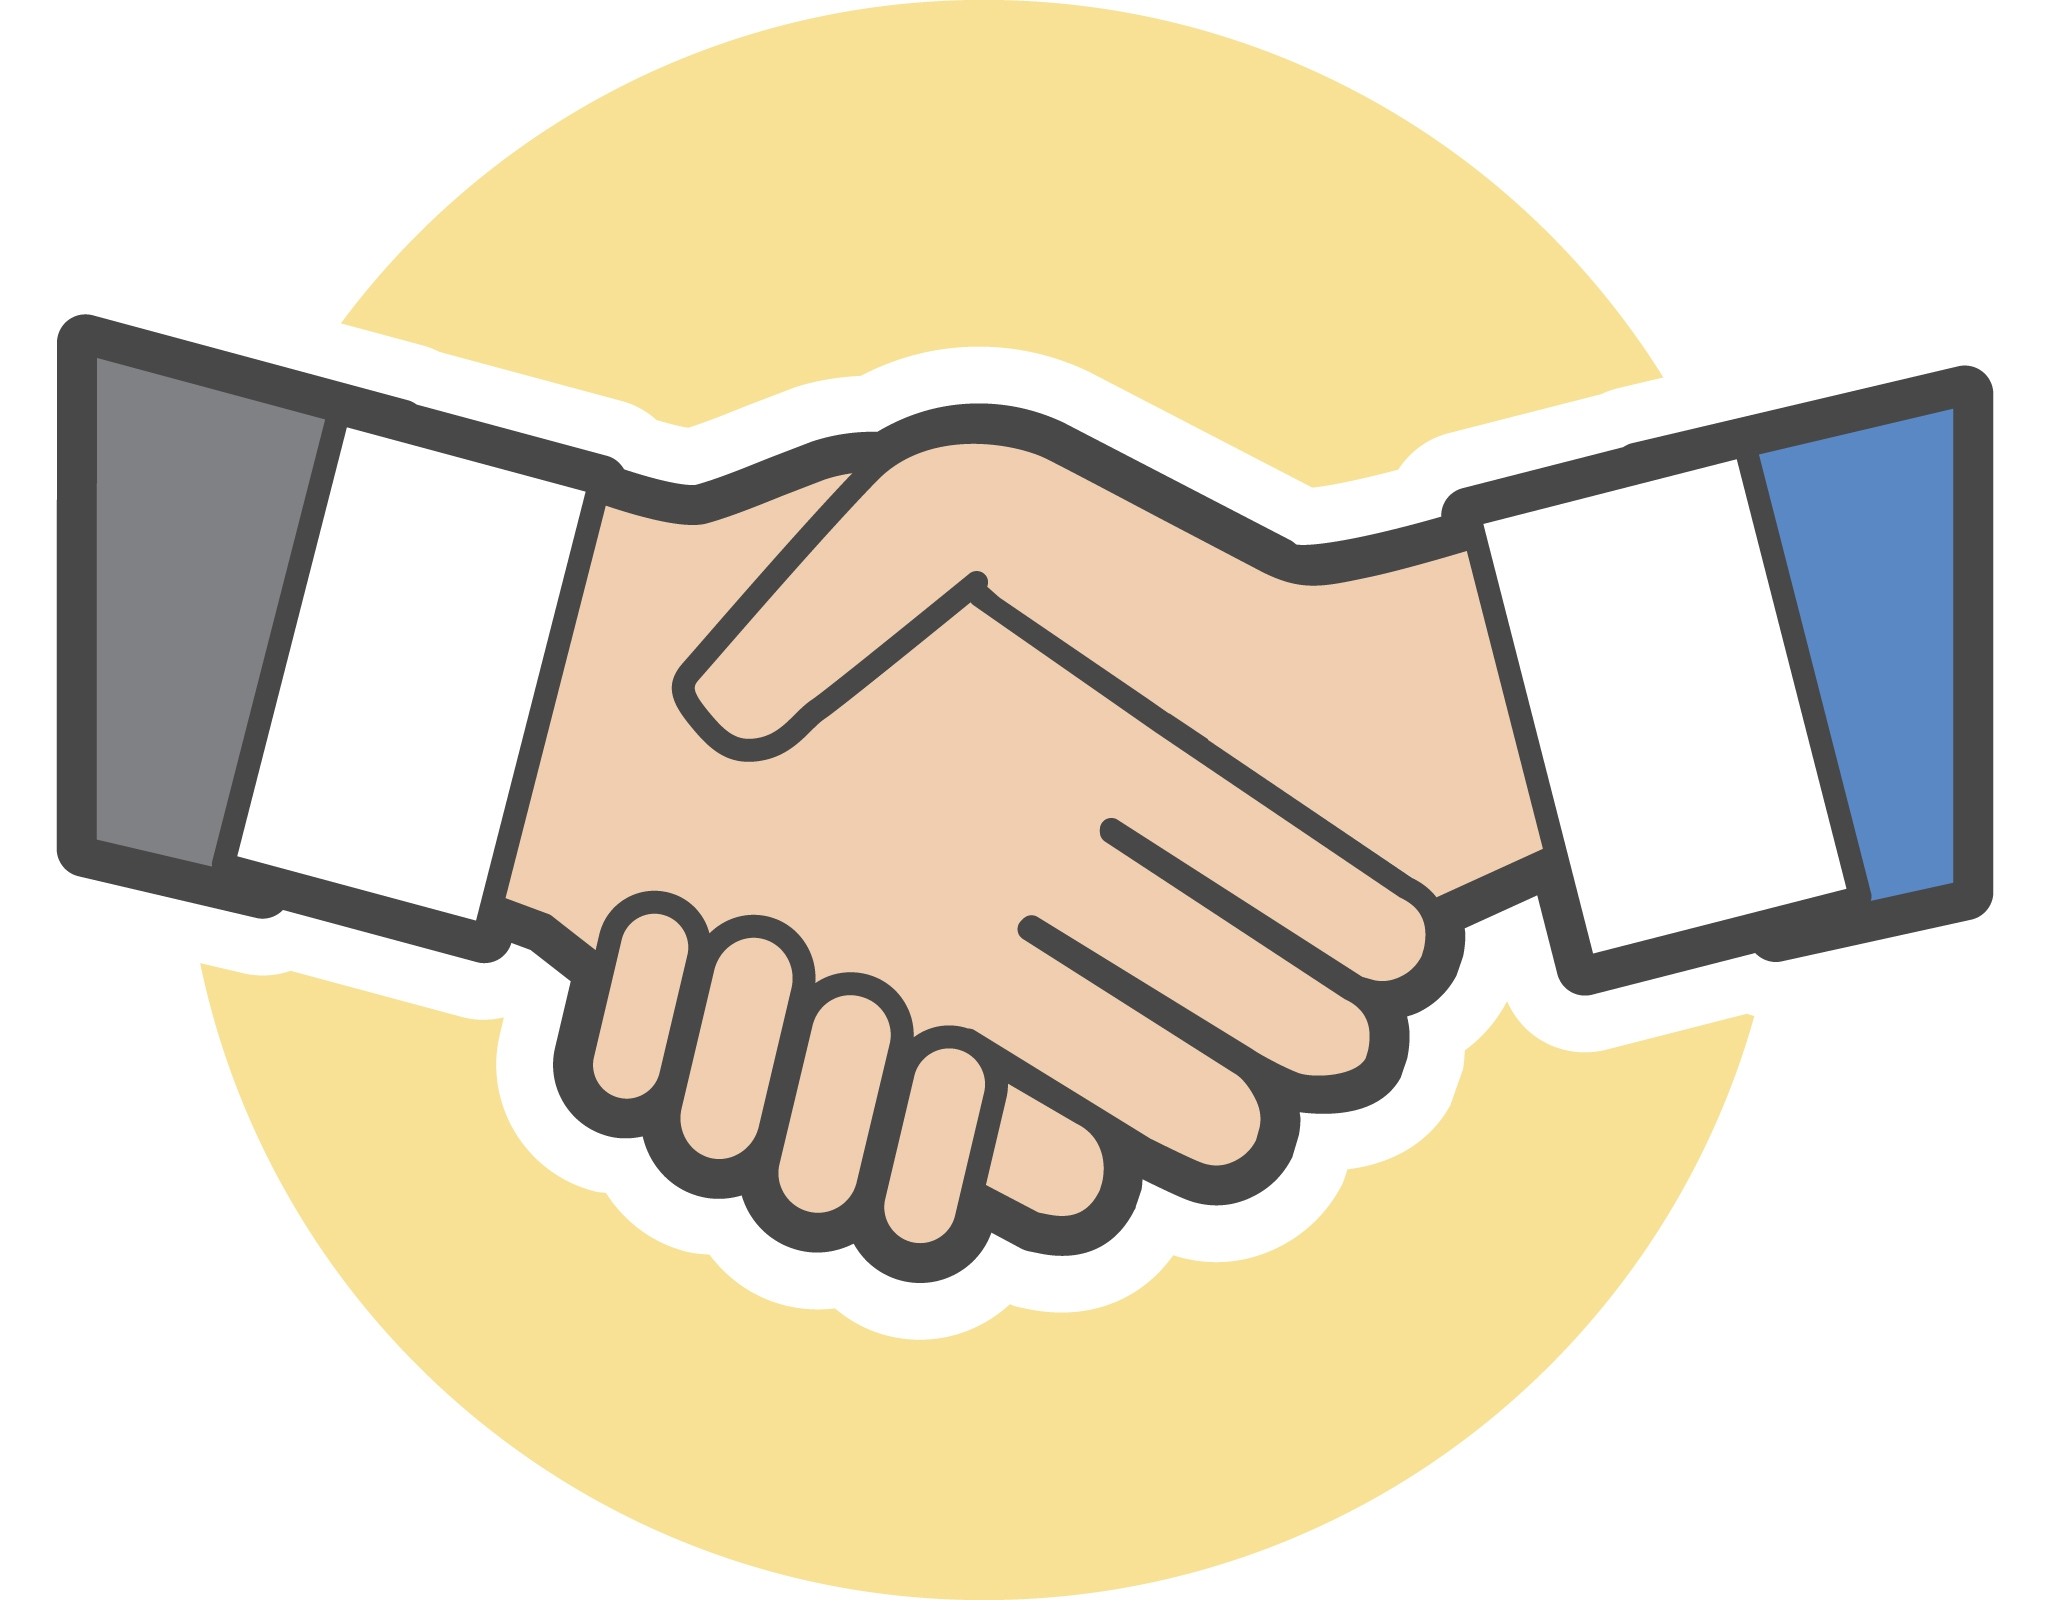 Handshake clipart. Awesome gallery digital collection